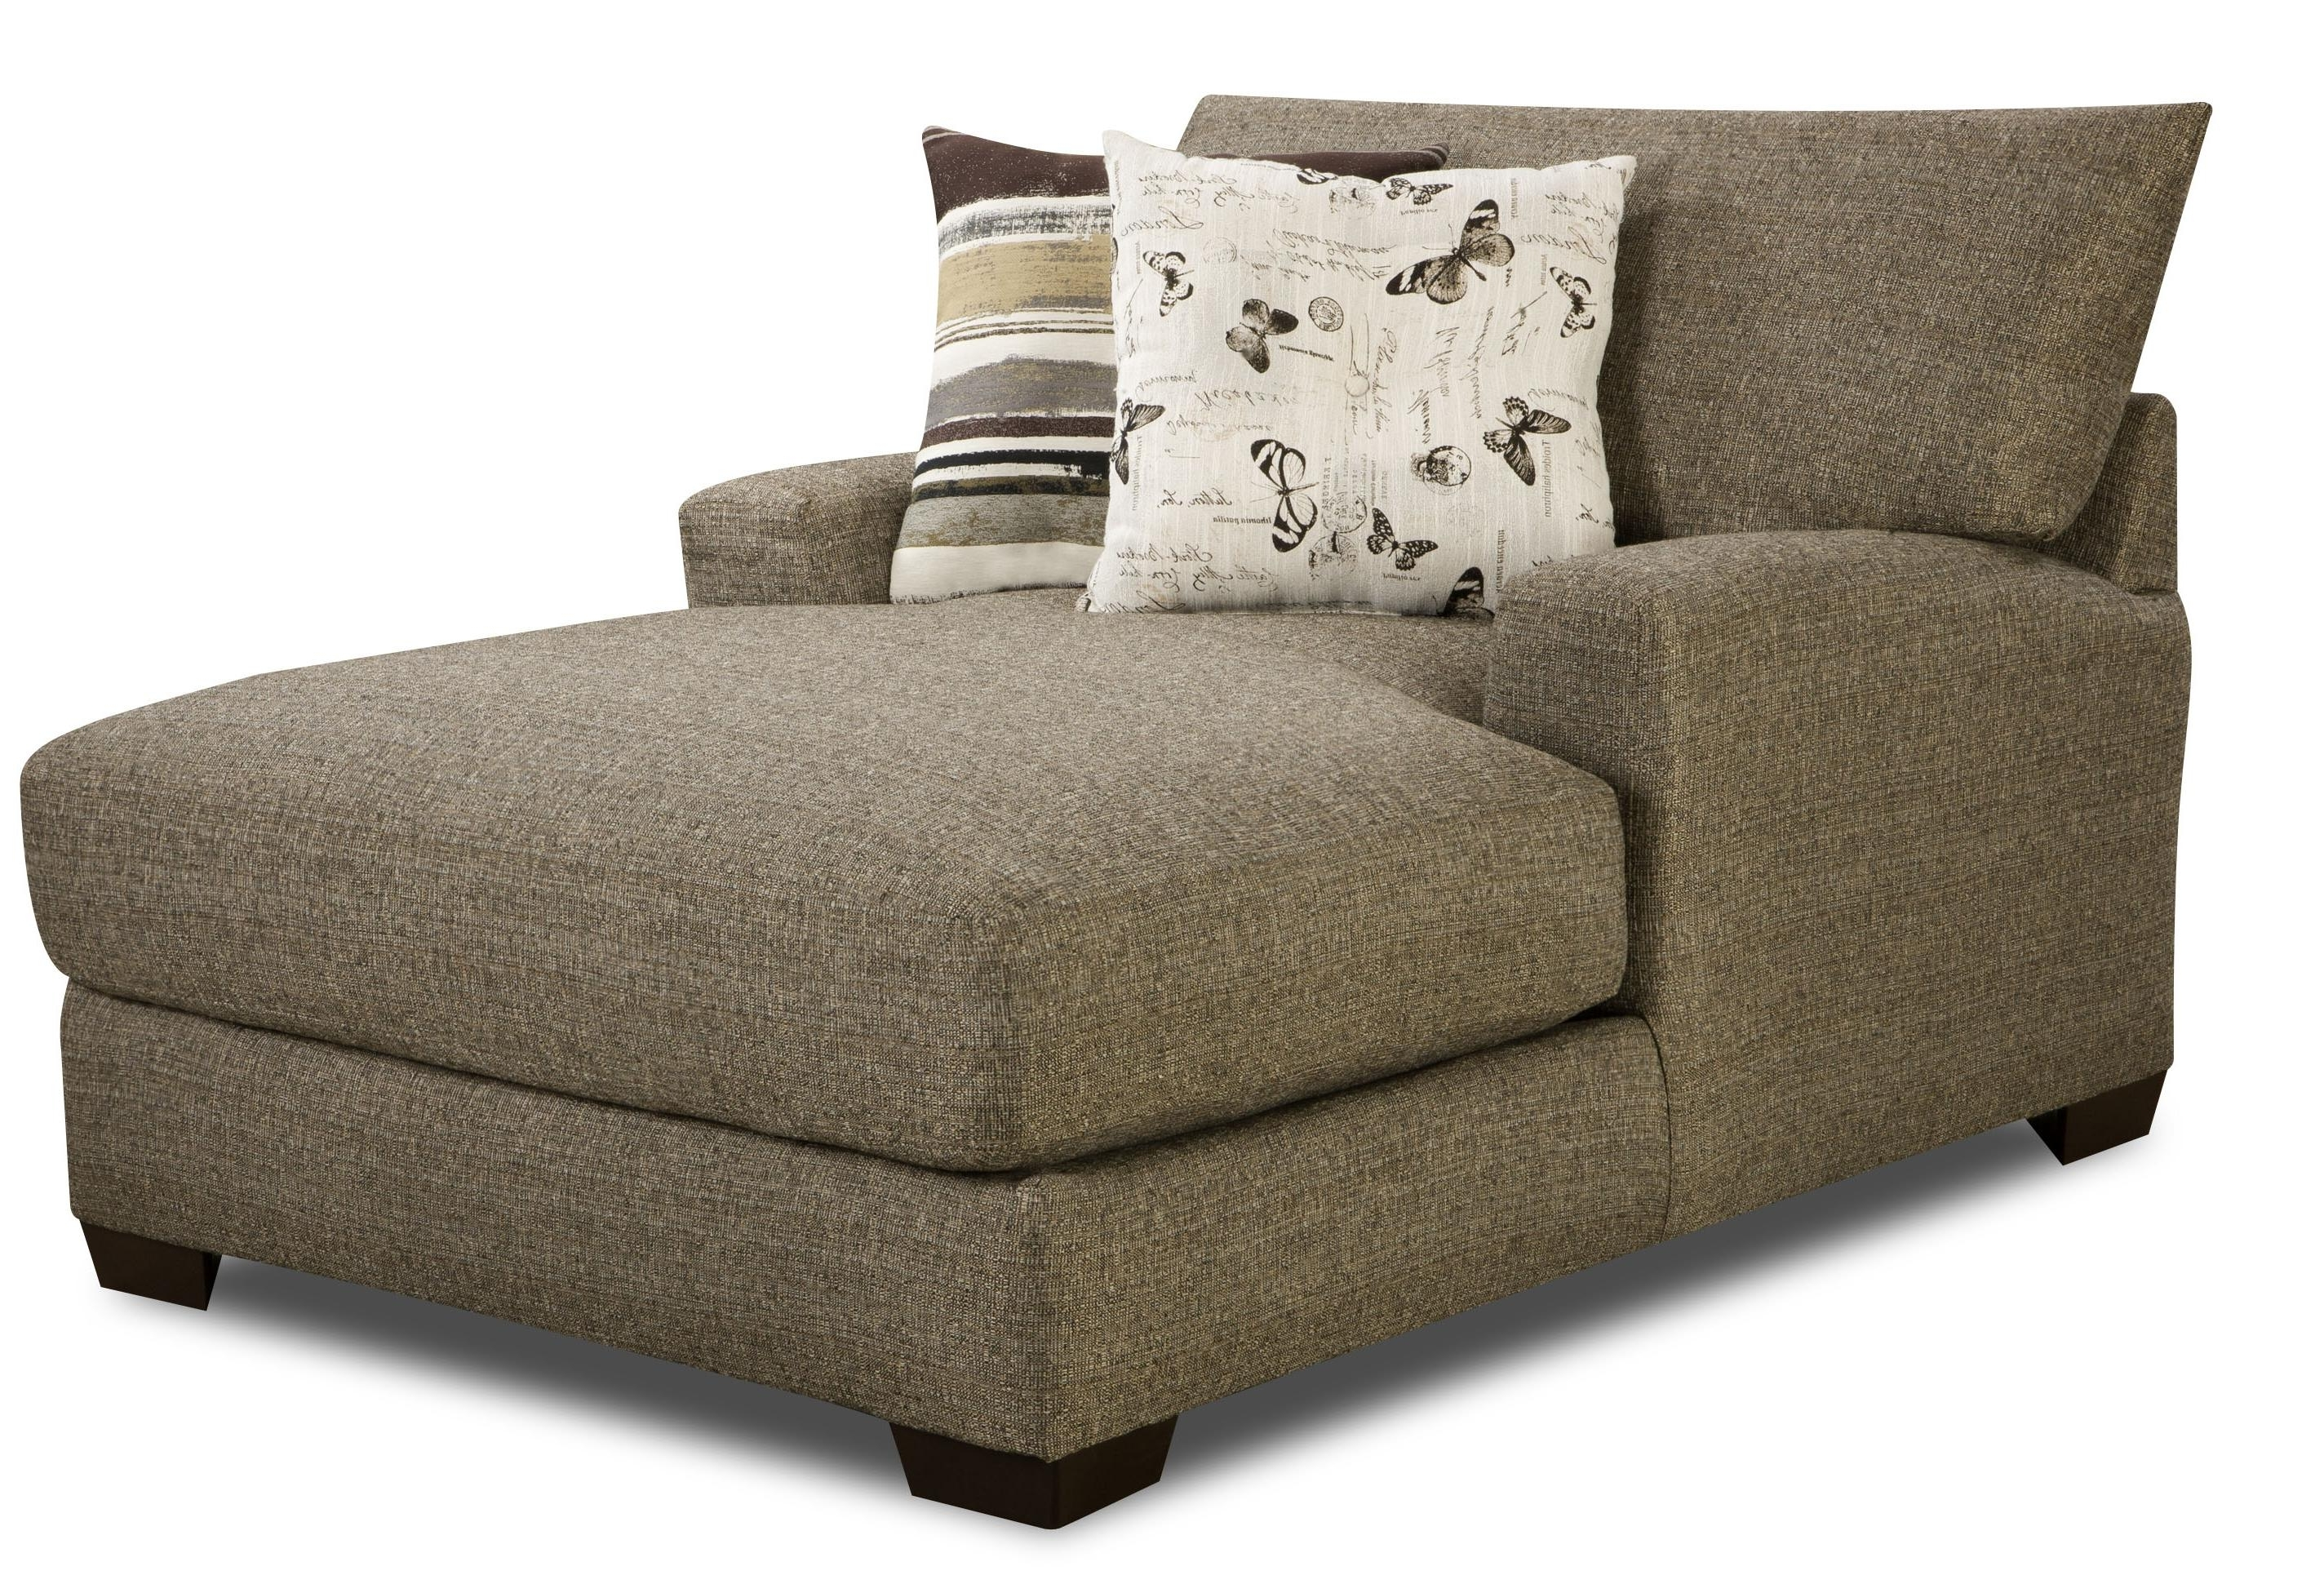 Well Known Wide Chaise Lounges Pertaining To Chairs (View 10 of 15)